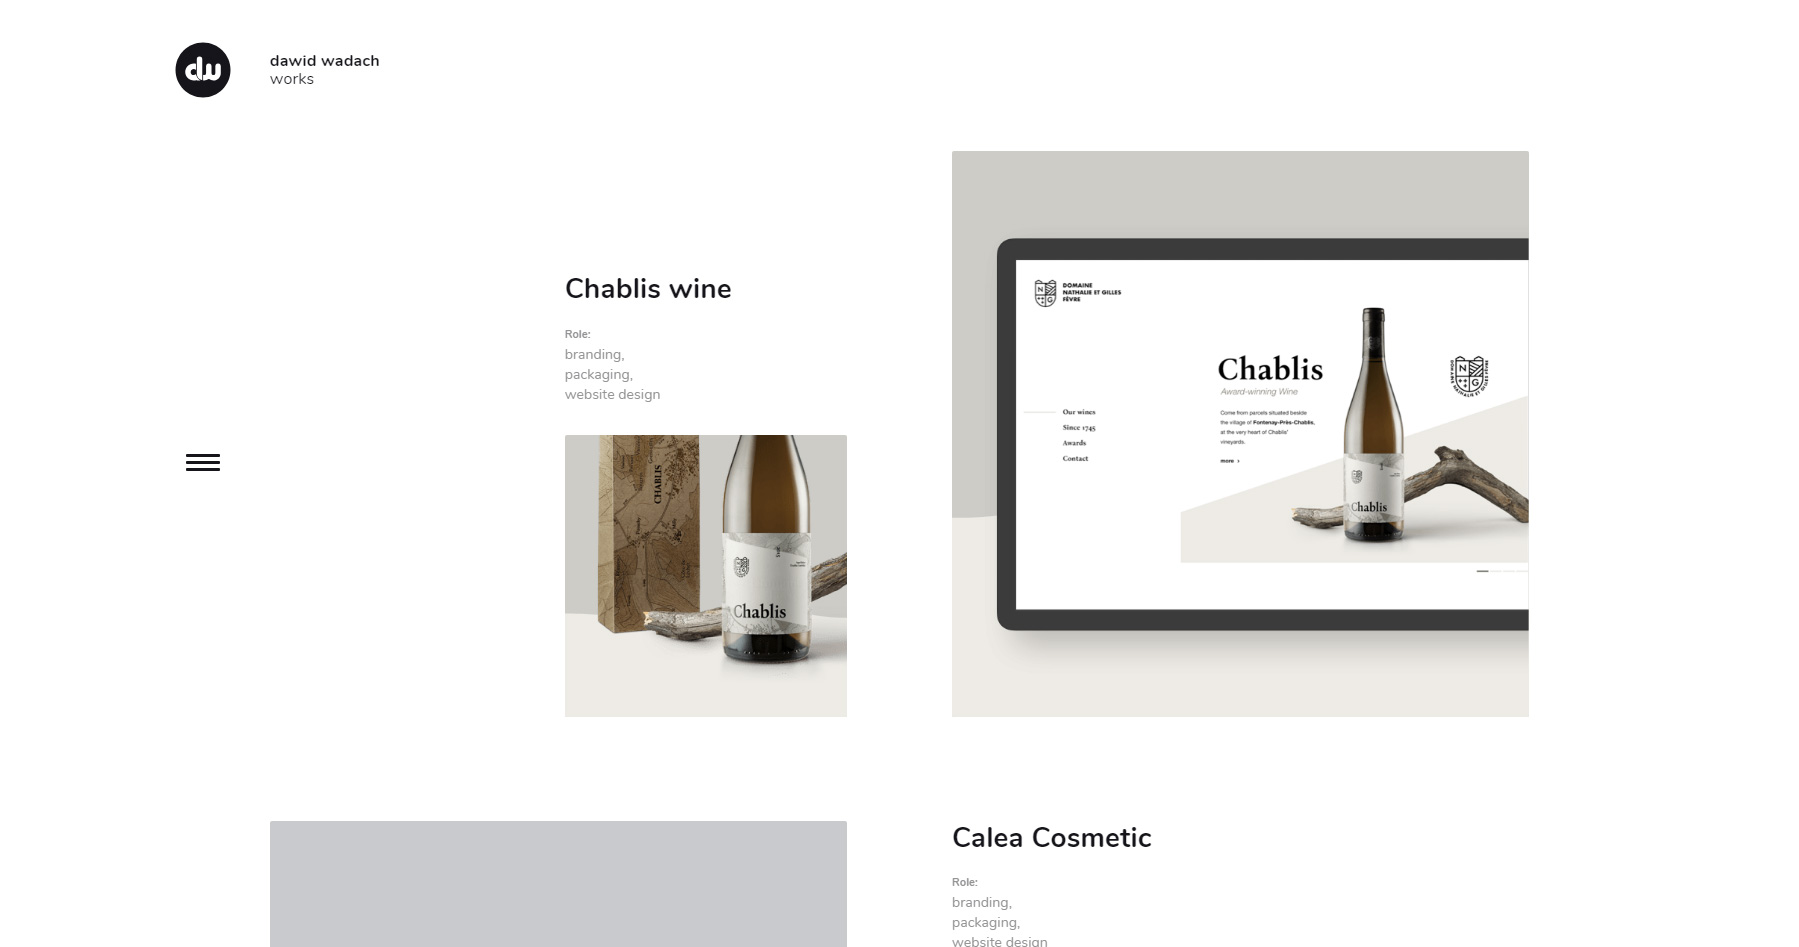 Dawid Wadach - Graphic designer - Website of the Day